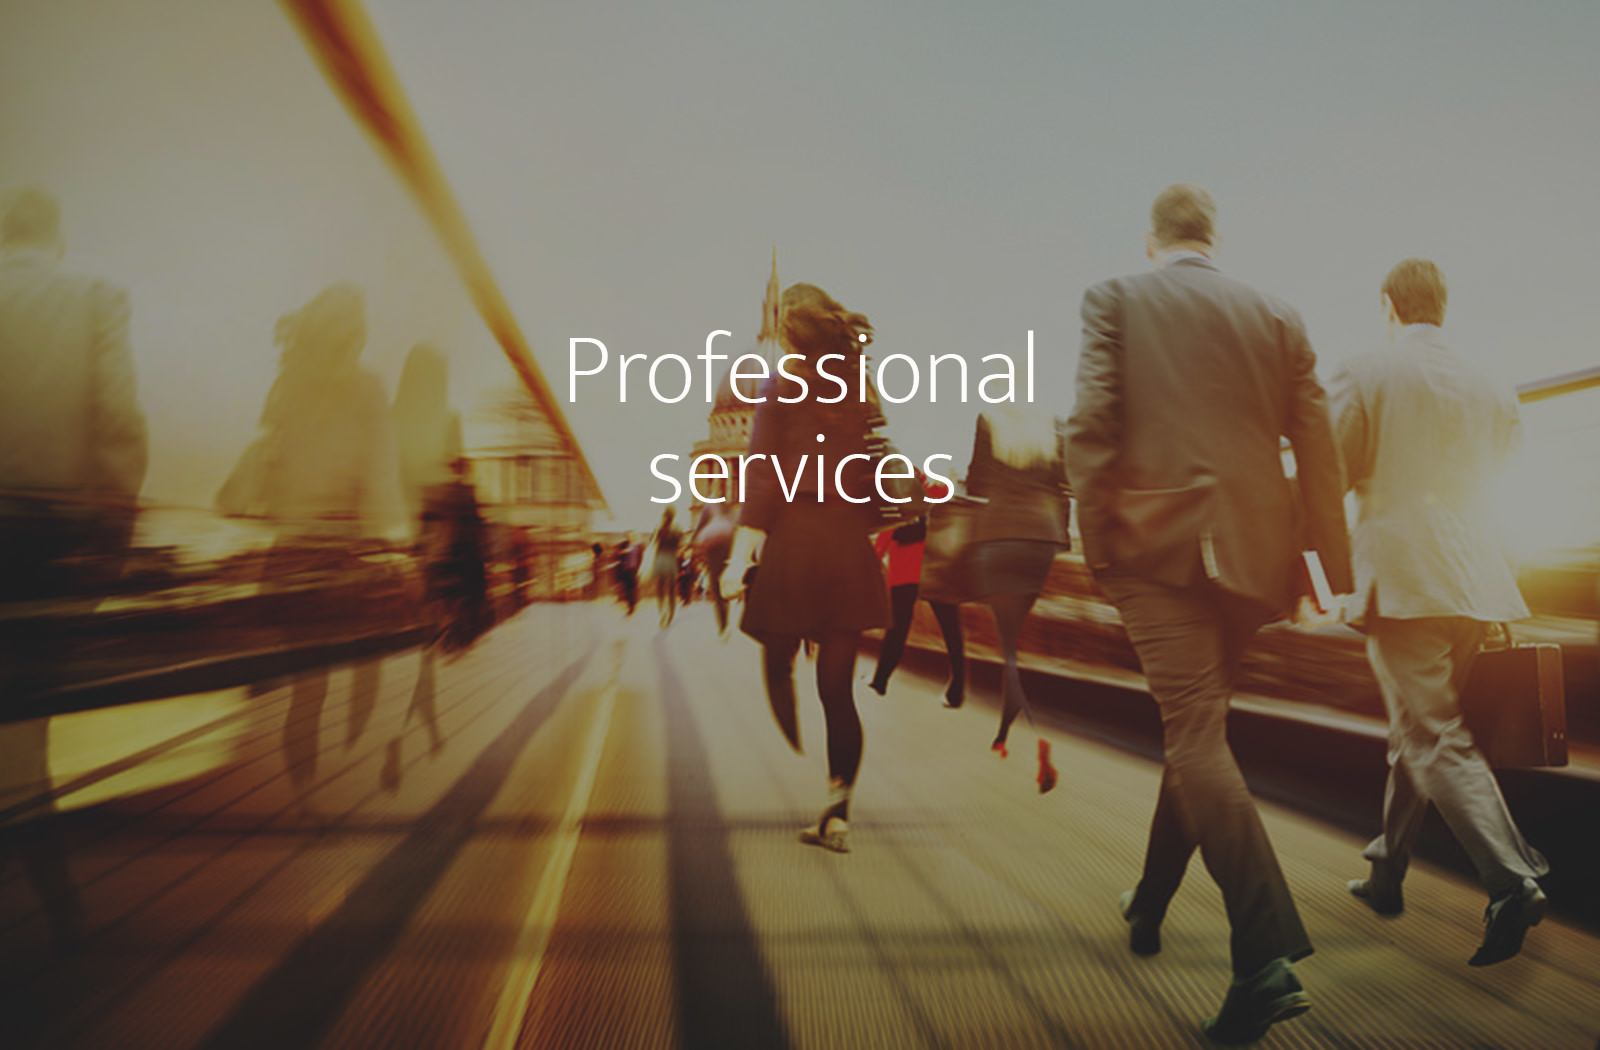 Recruitment, assessment and development for Professional Services